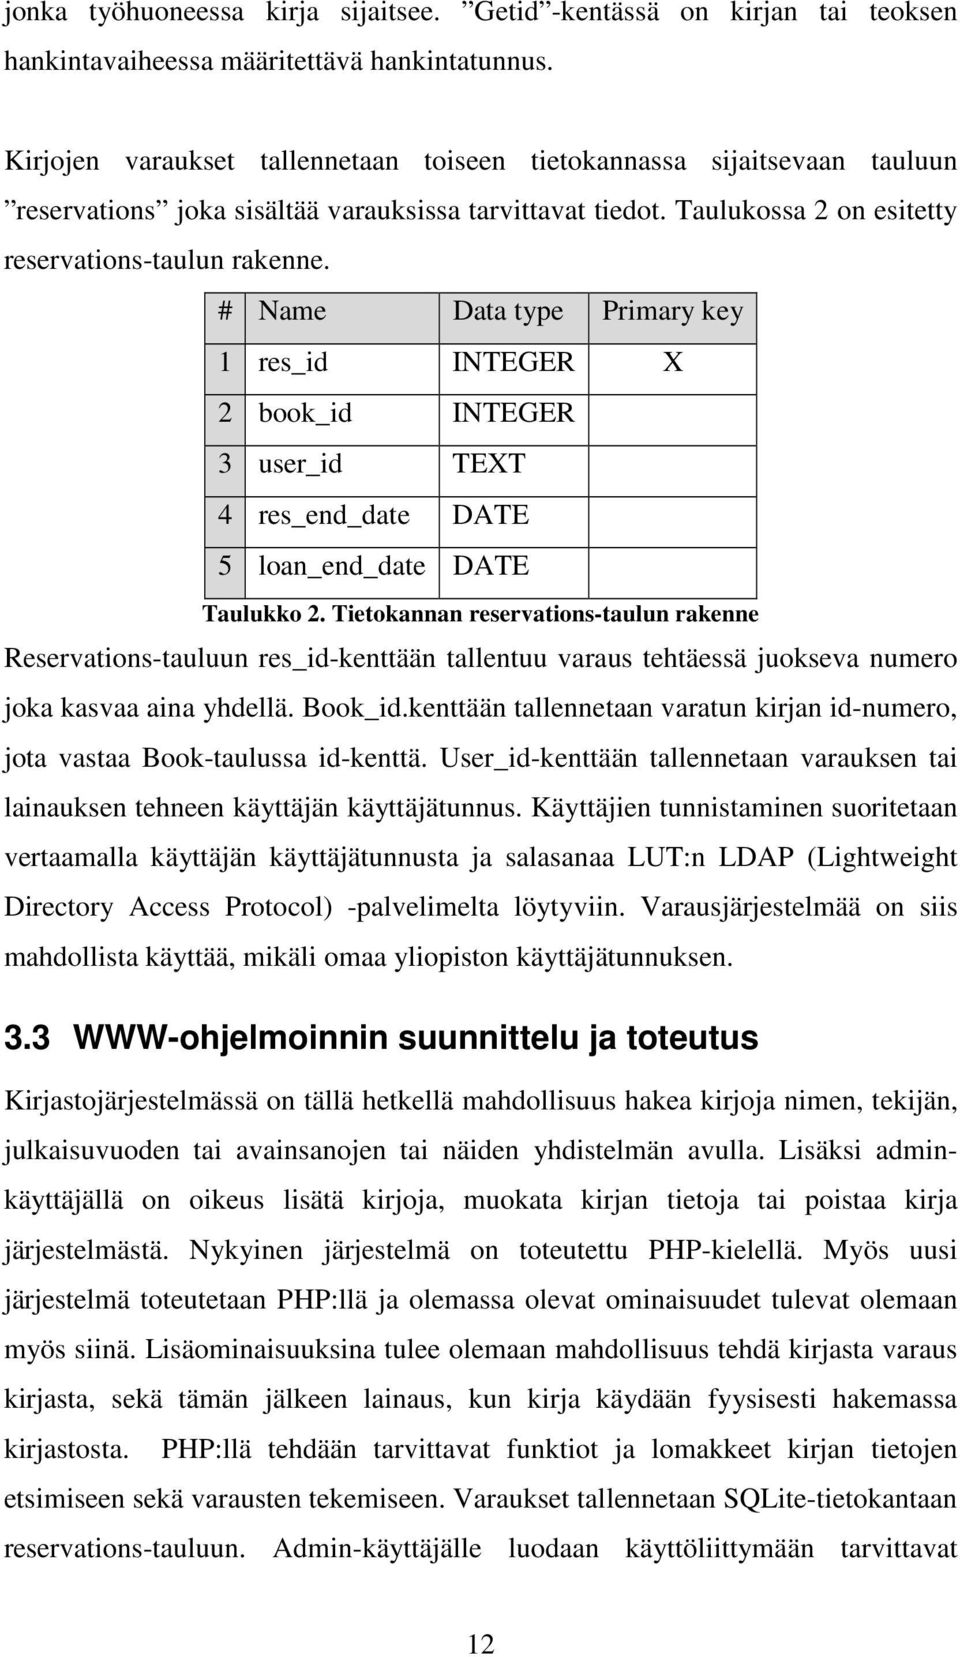 # Name Data type Primary key 1 res_id INTEGER X 2 book_id INTEGER 3 user_id TEXT 4 res_end_date DATE 5 loan_end_date DATE Taulukko 2.